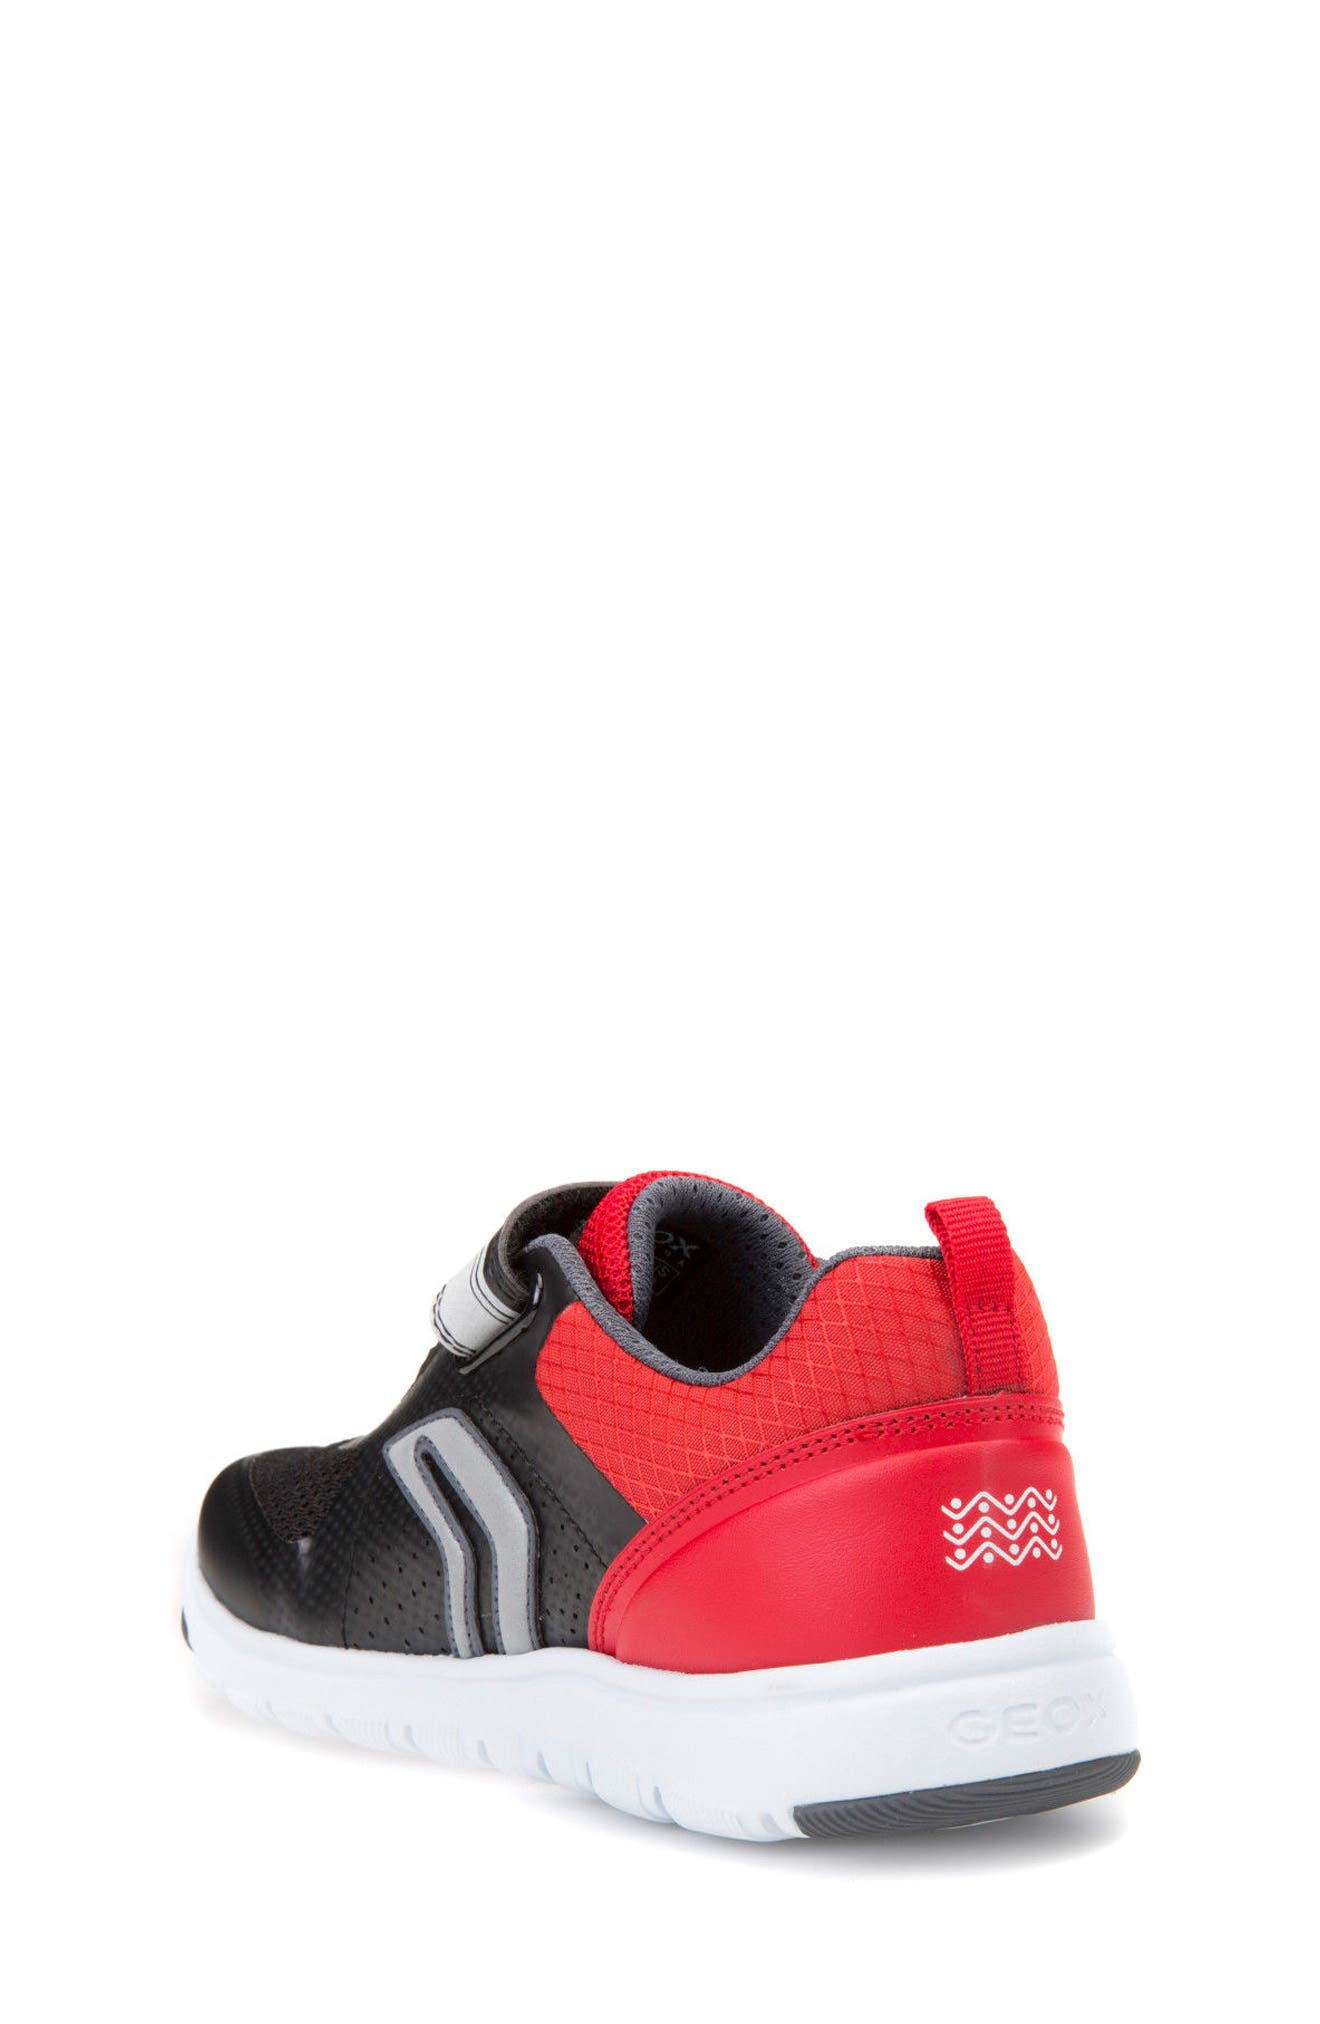 Xunday Low Top Sneaker,                             Alternate thumbnail 2, color,                             Black/ Red